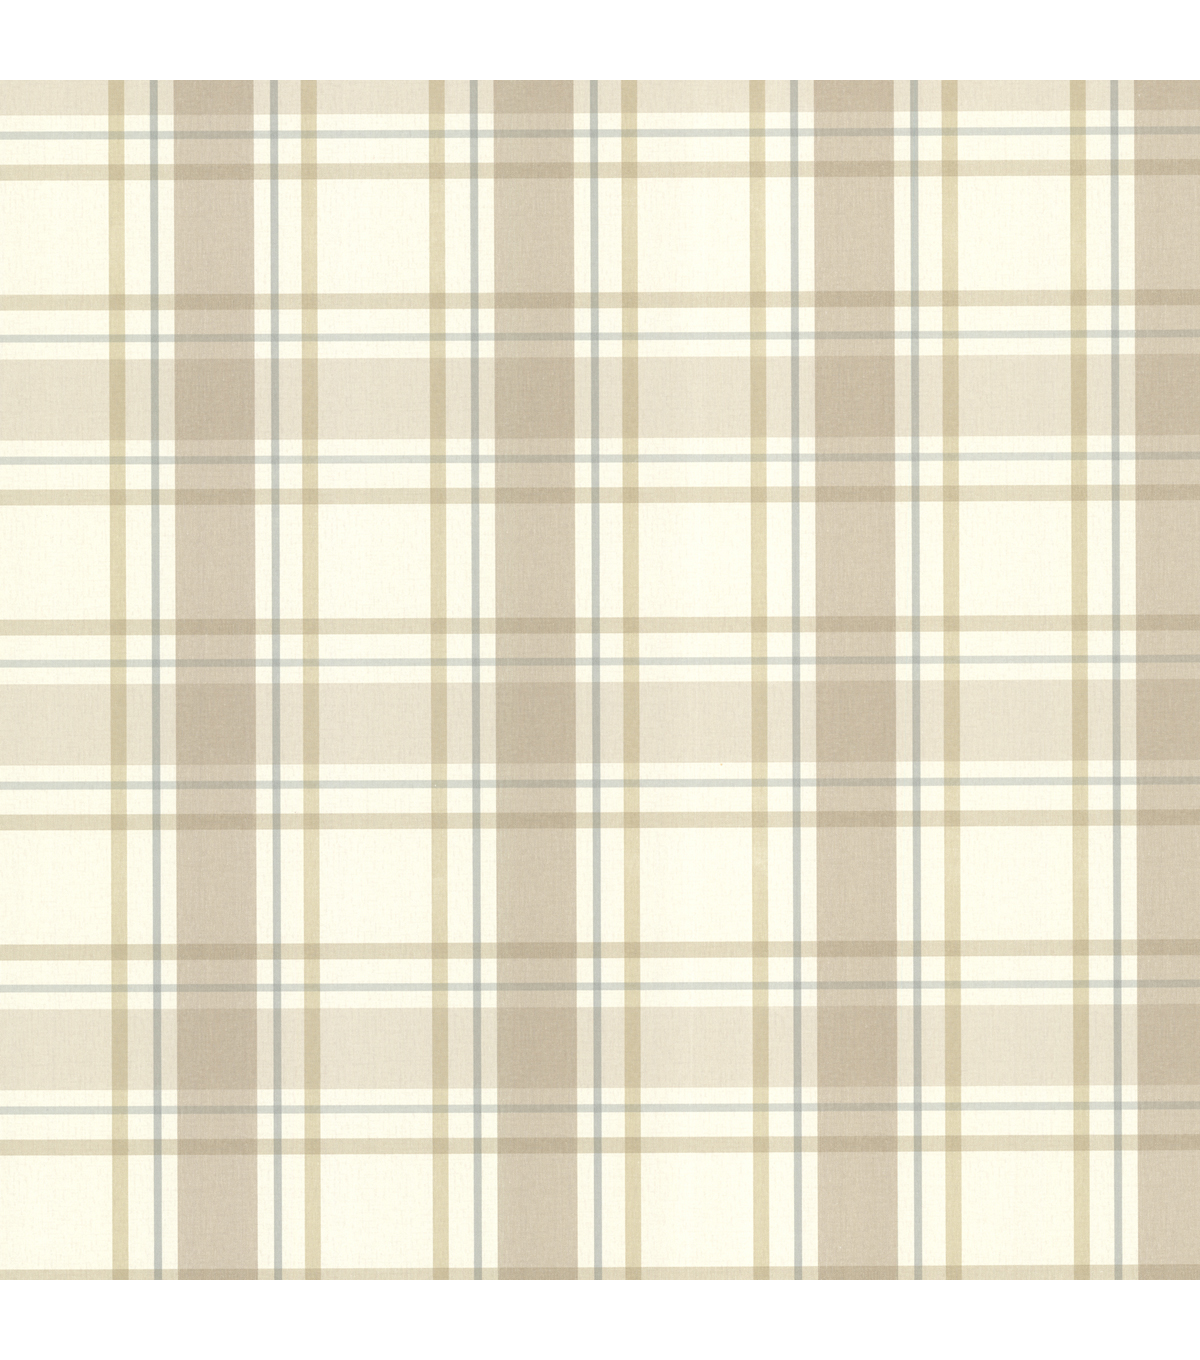 Grand Plaid Taupe Plaid Wallpaper Sample